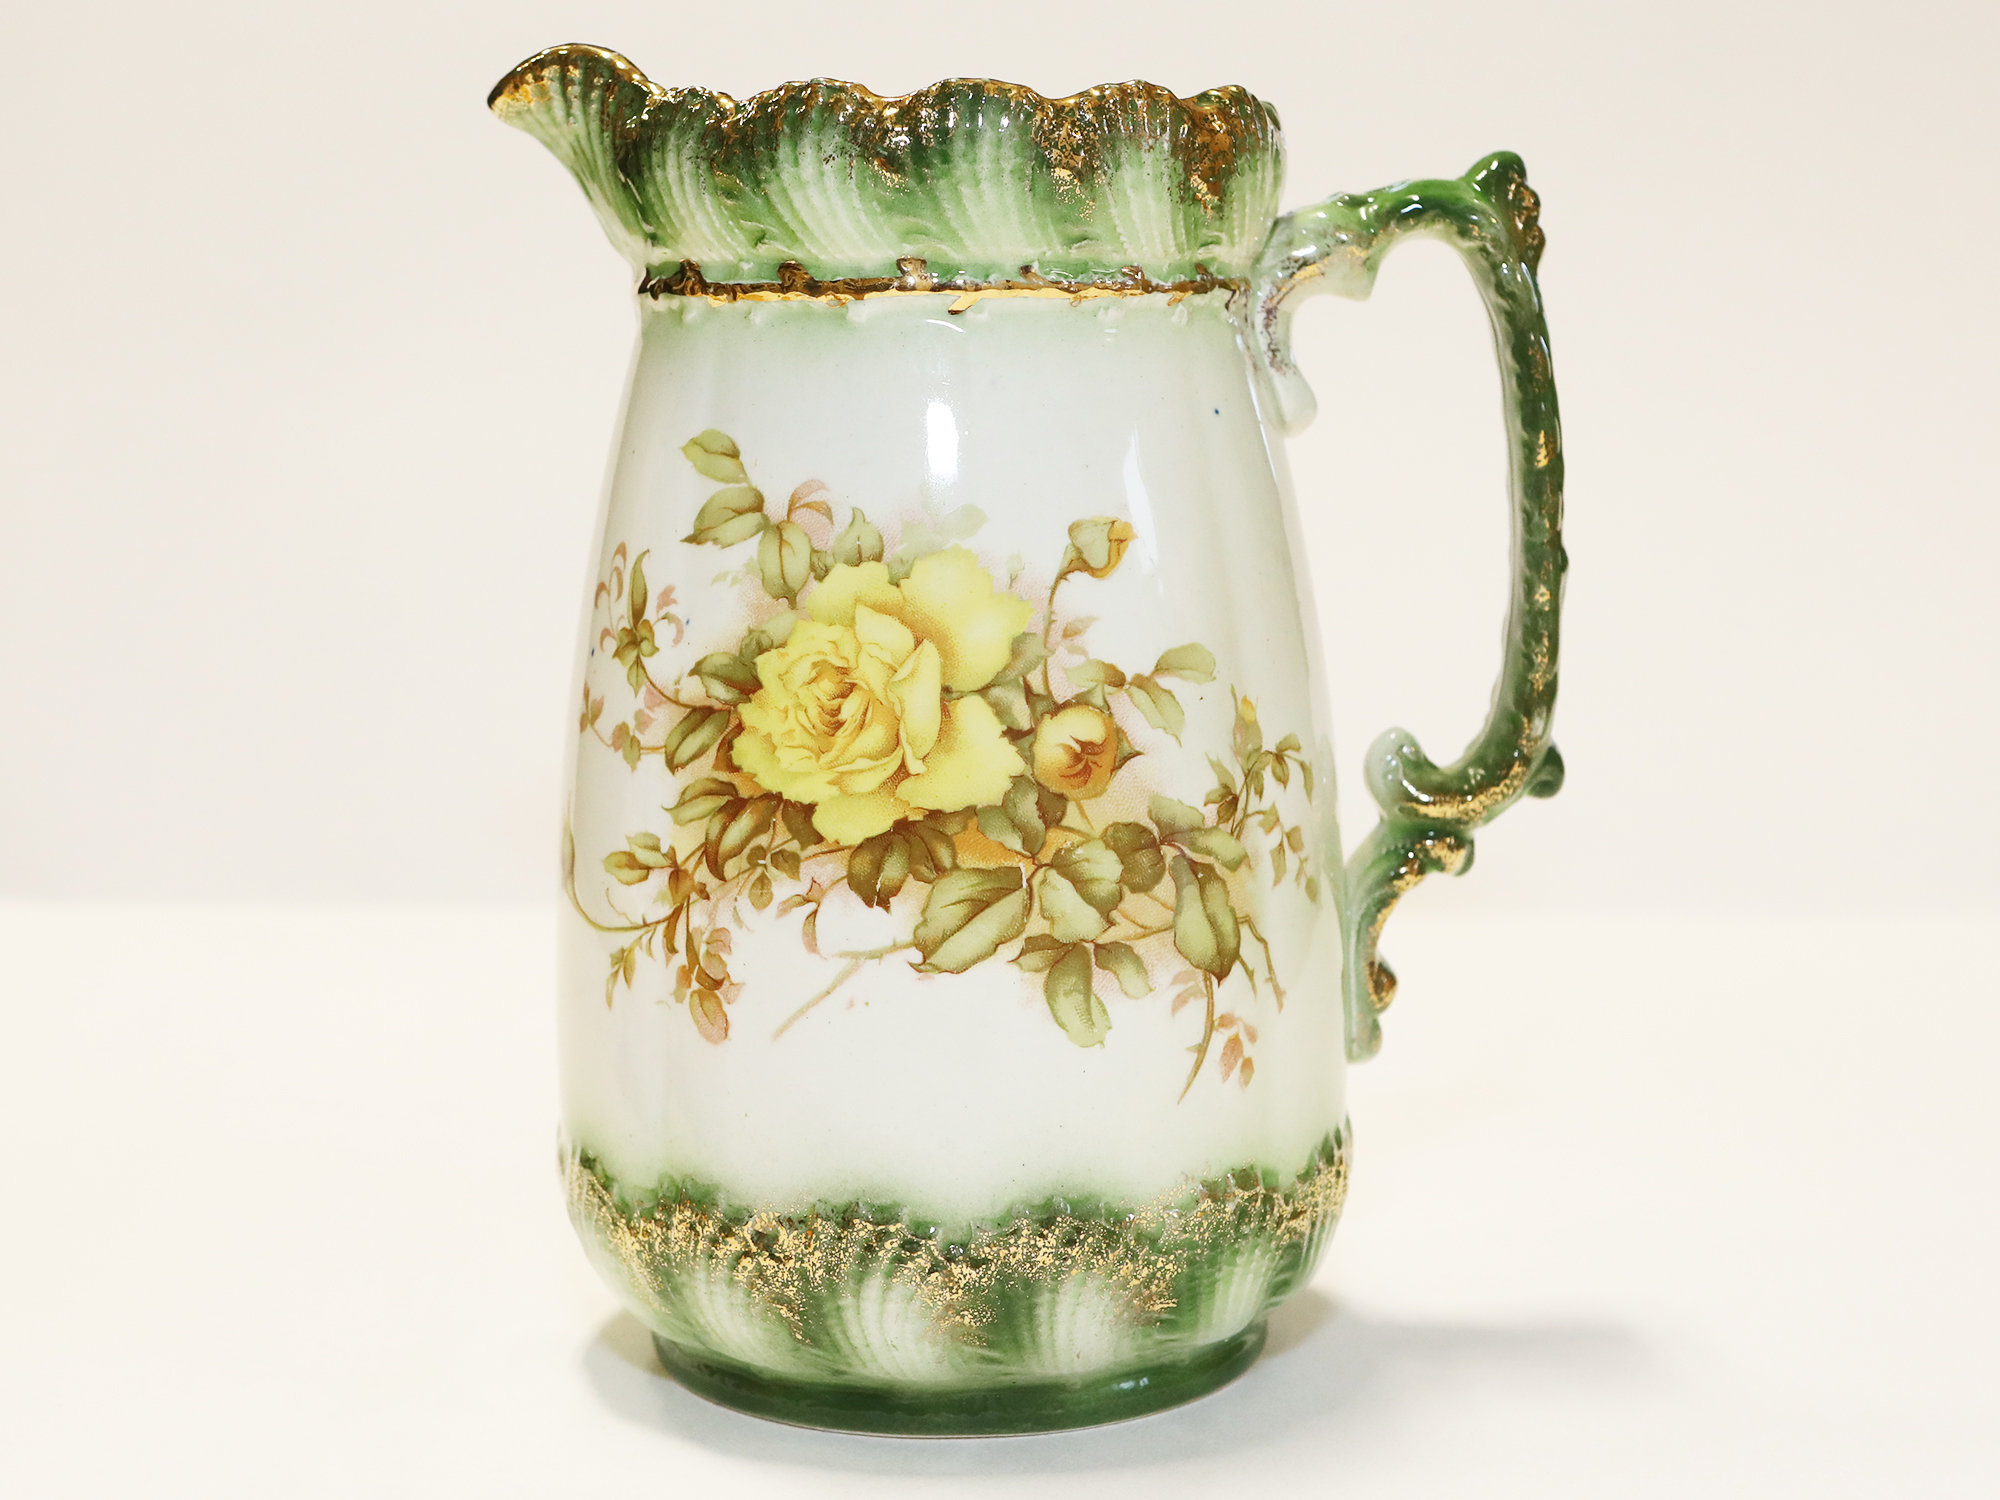 A Green And White Floral Pitcher